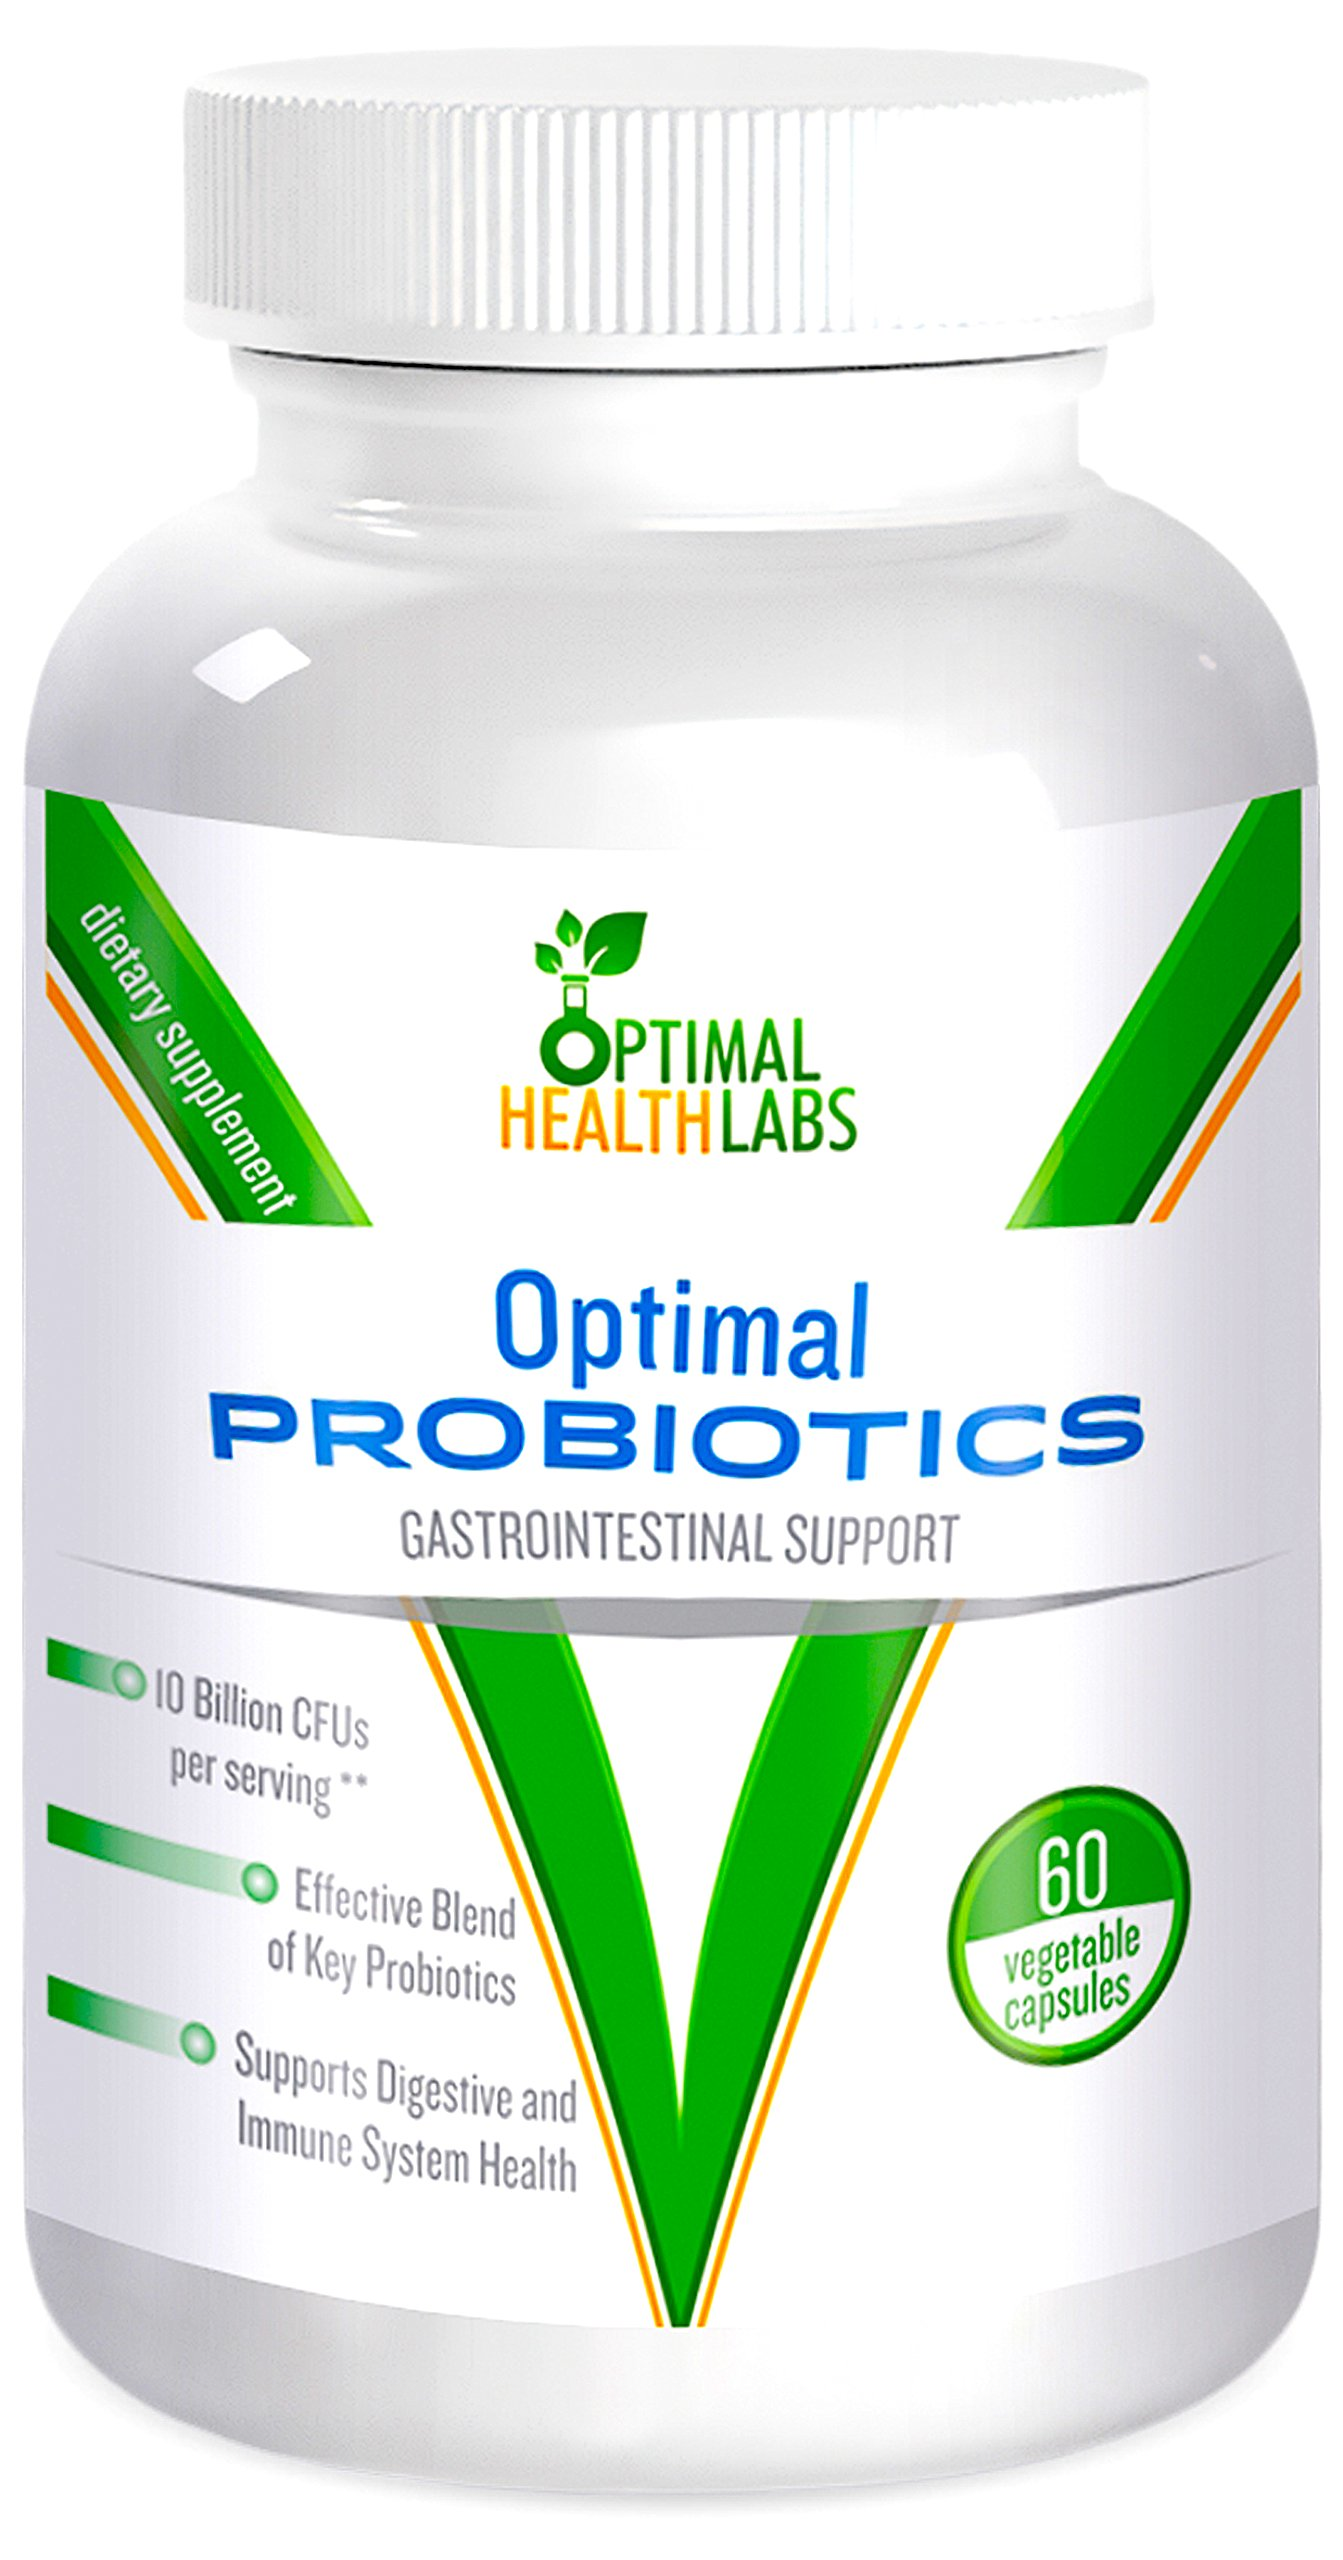 Optimal Probiotics for Women Men and Kids Health - Effective blend of key probiotics to support your immune system and digestive health - 60 Natural Vegetarian Capsules